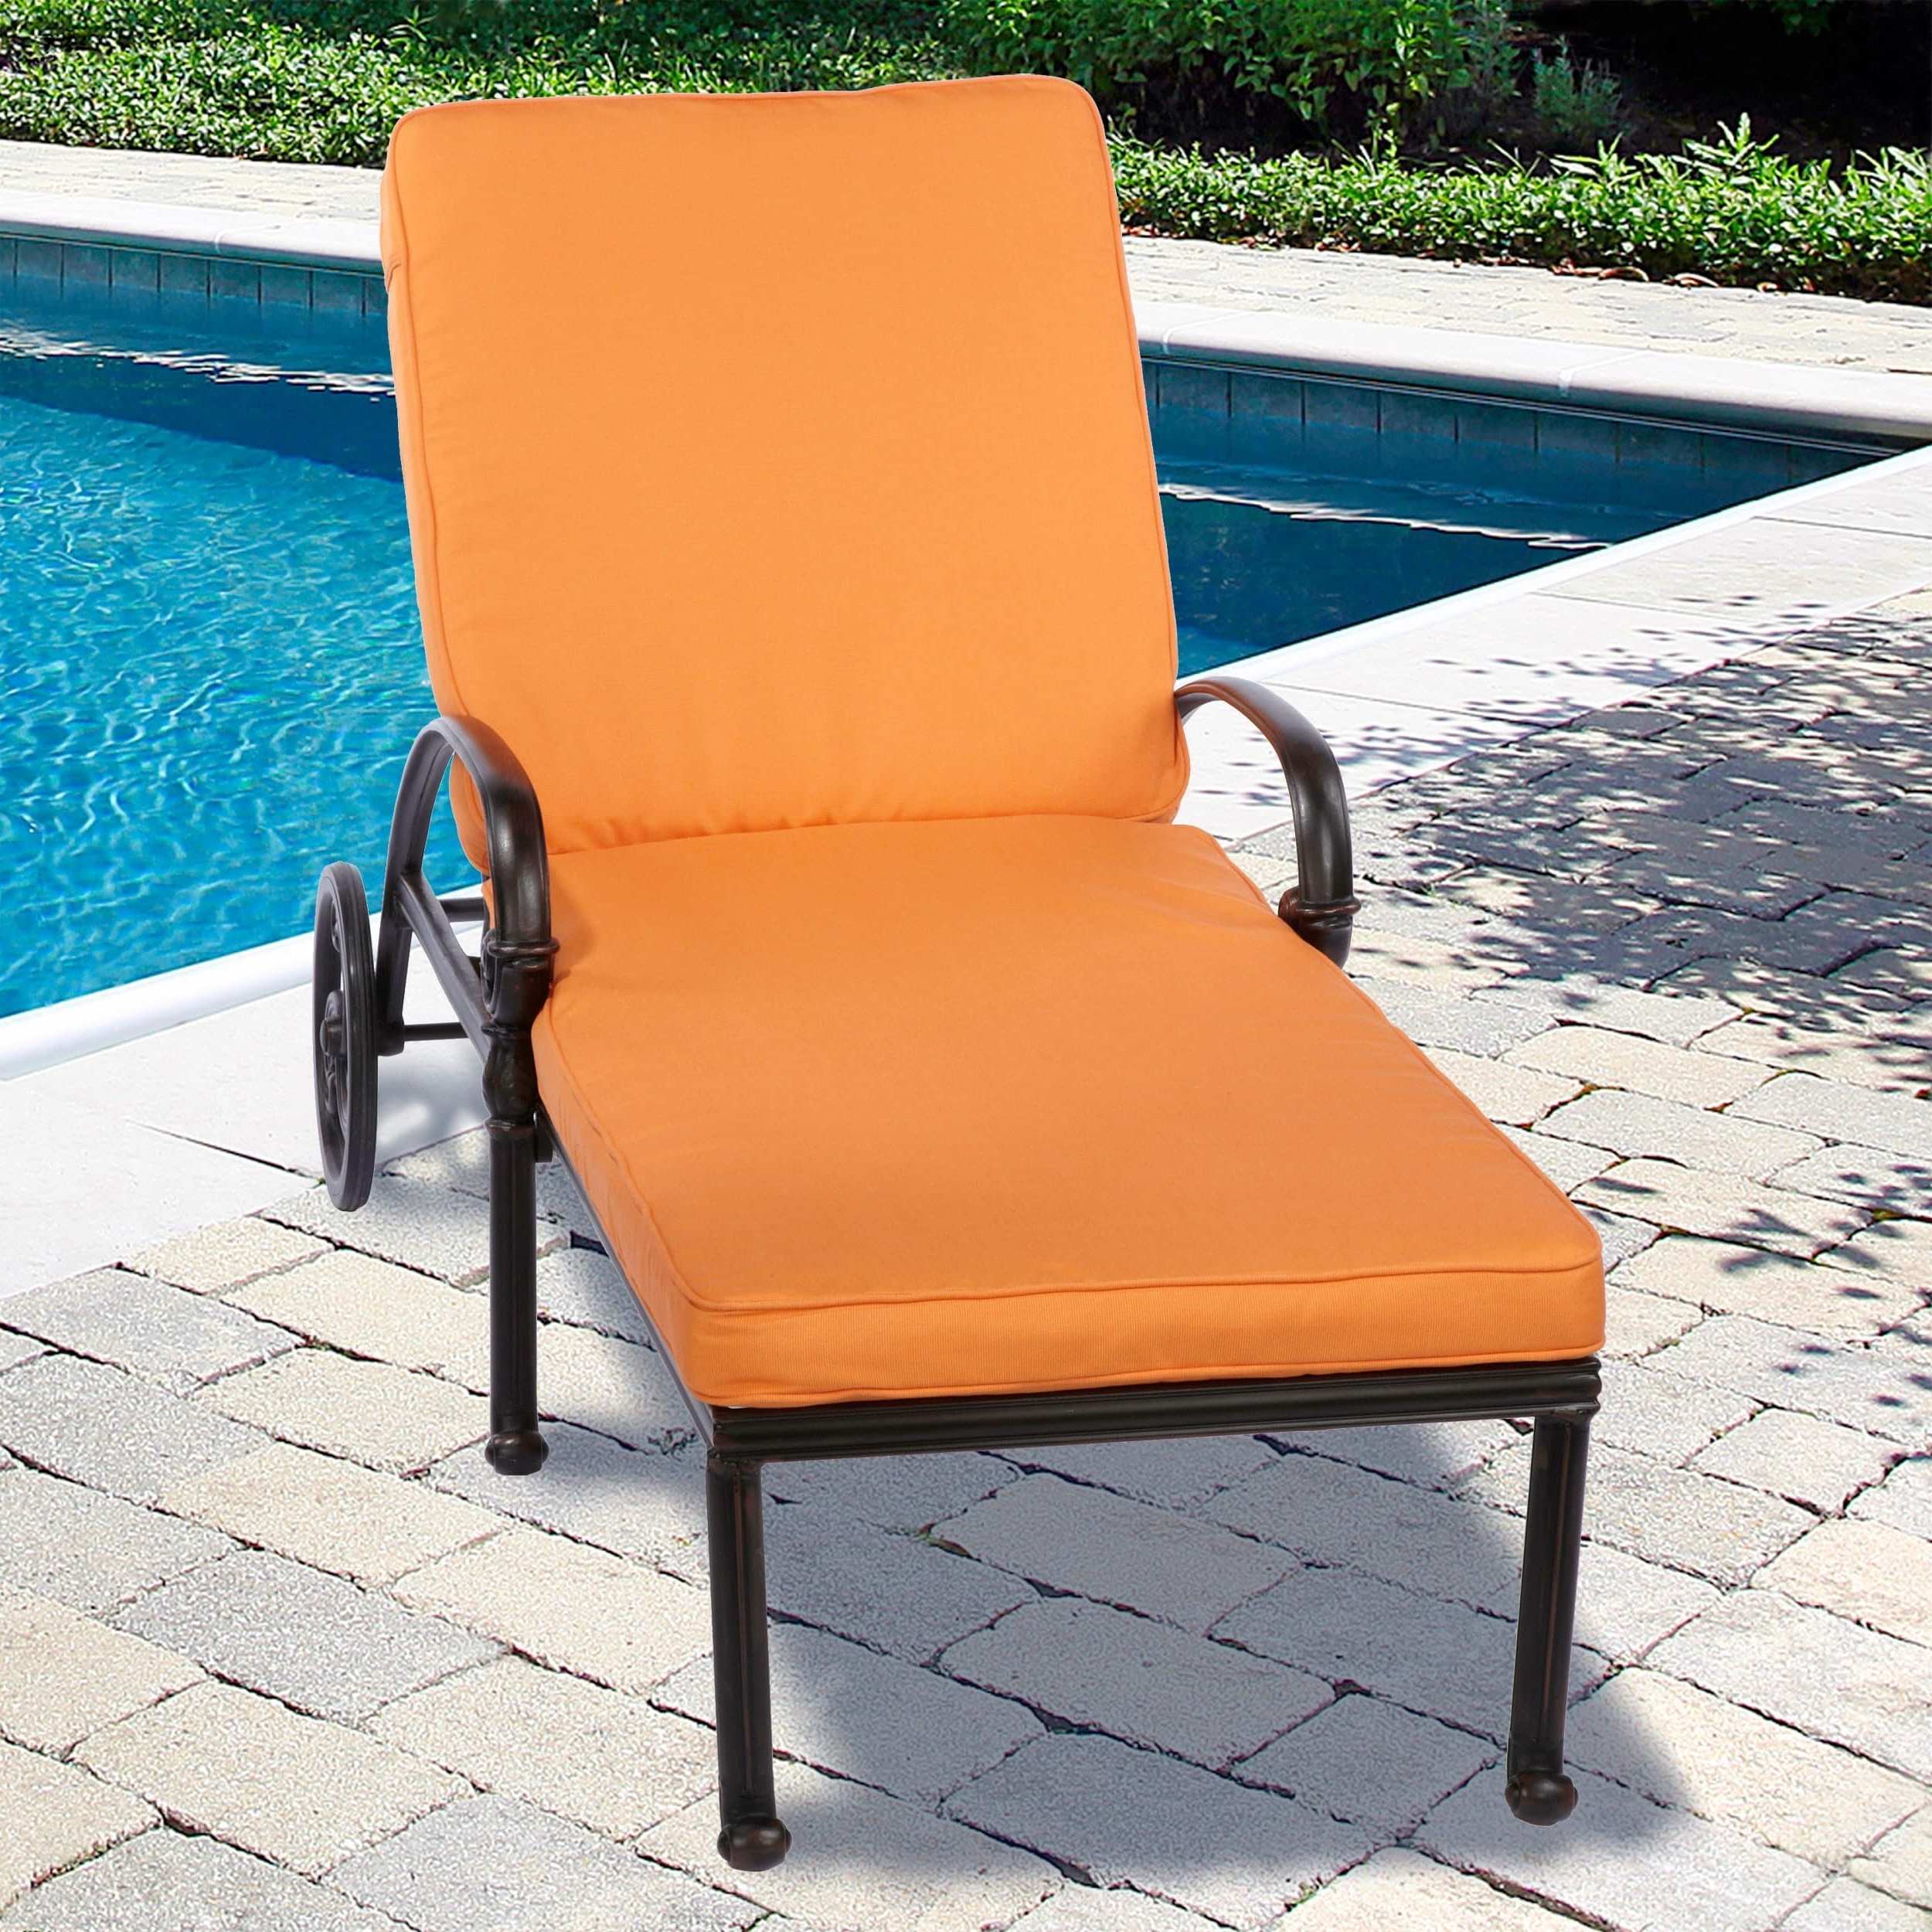 Indoor/ Outdoor 25 Inch Chaise Lounge Cushion With Stain Resistant Pertaining To Best And Newest Fabric Outdoor Chaise Lounge Chairs (View 10 of 15)